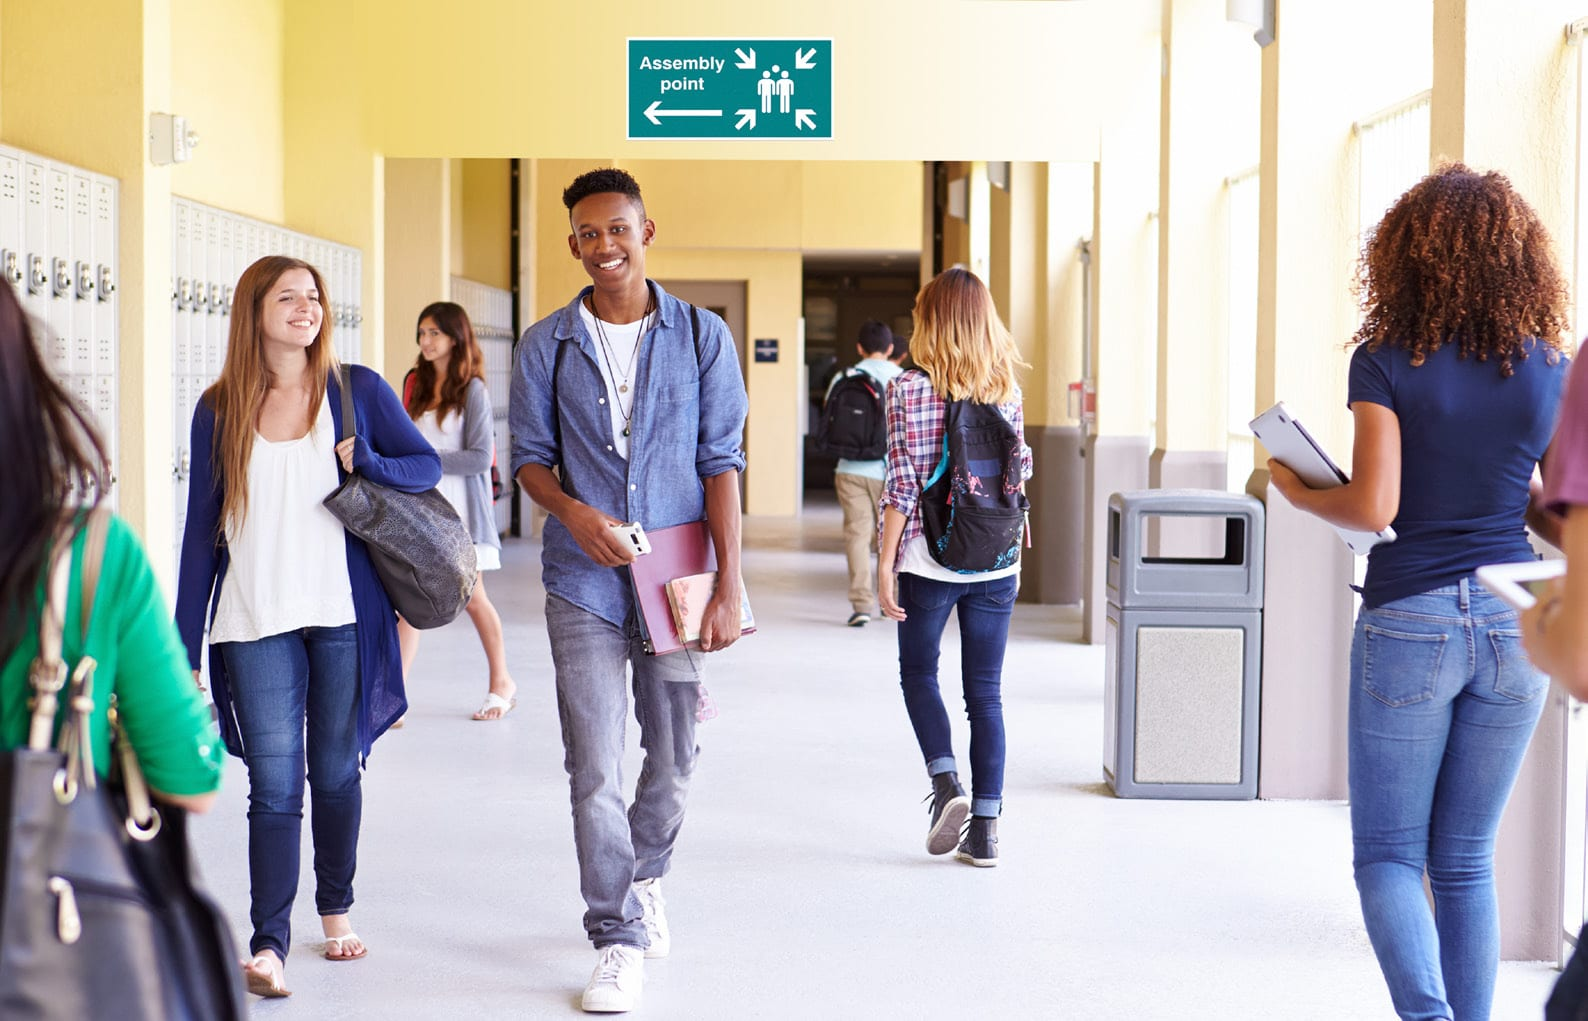 A guide to ensure schools and universities are educated in safe, emergency evacuation